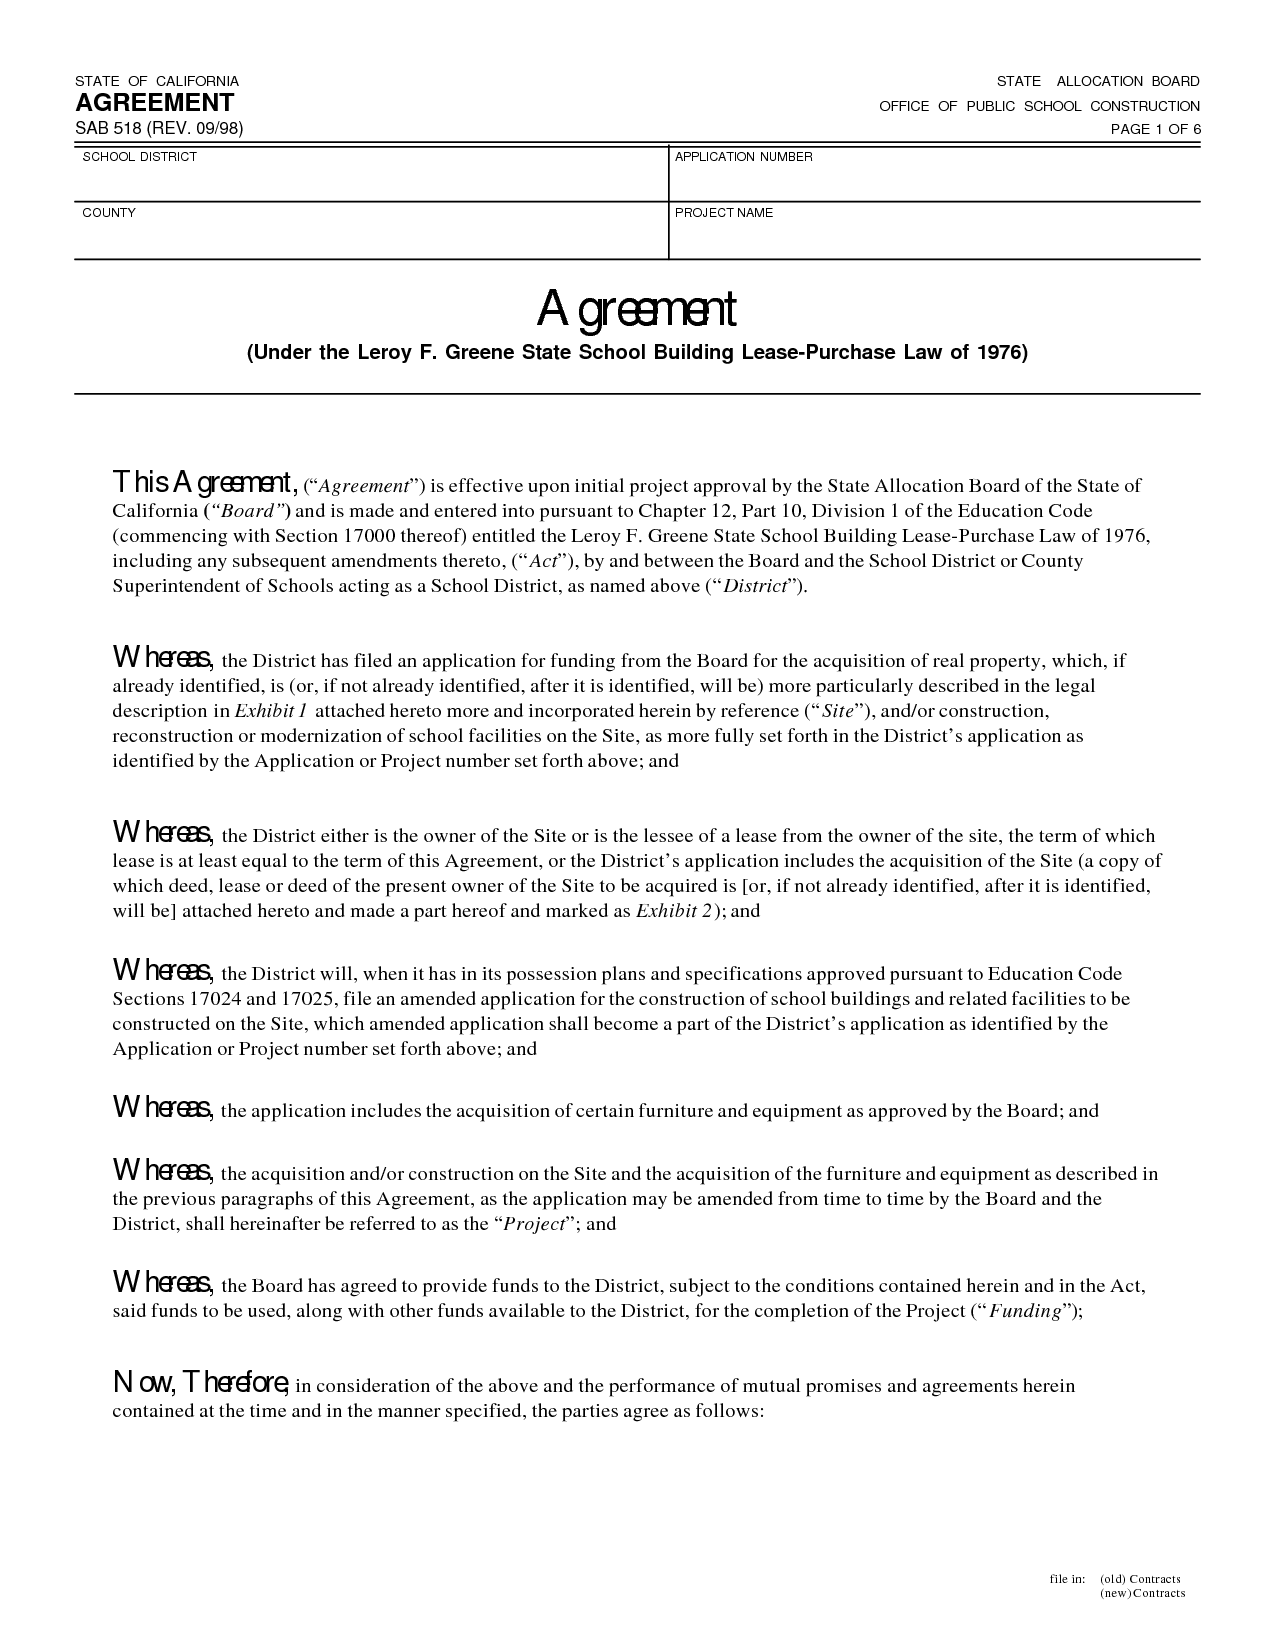 Agreement Business Templates – Sample Purchase Agreement for Business